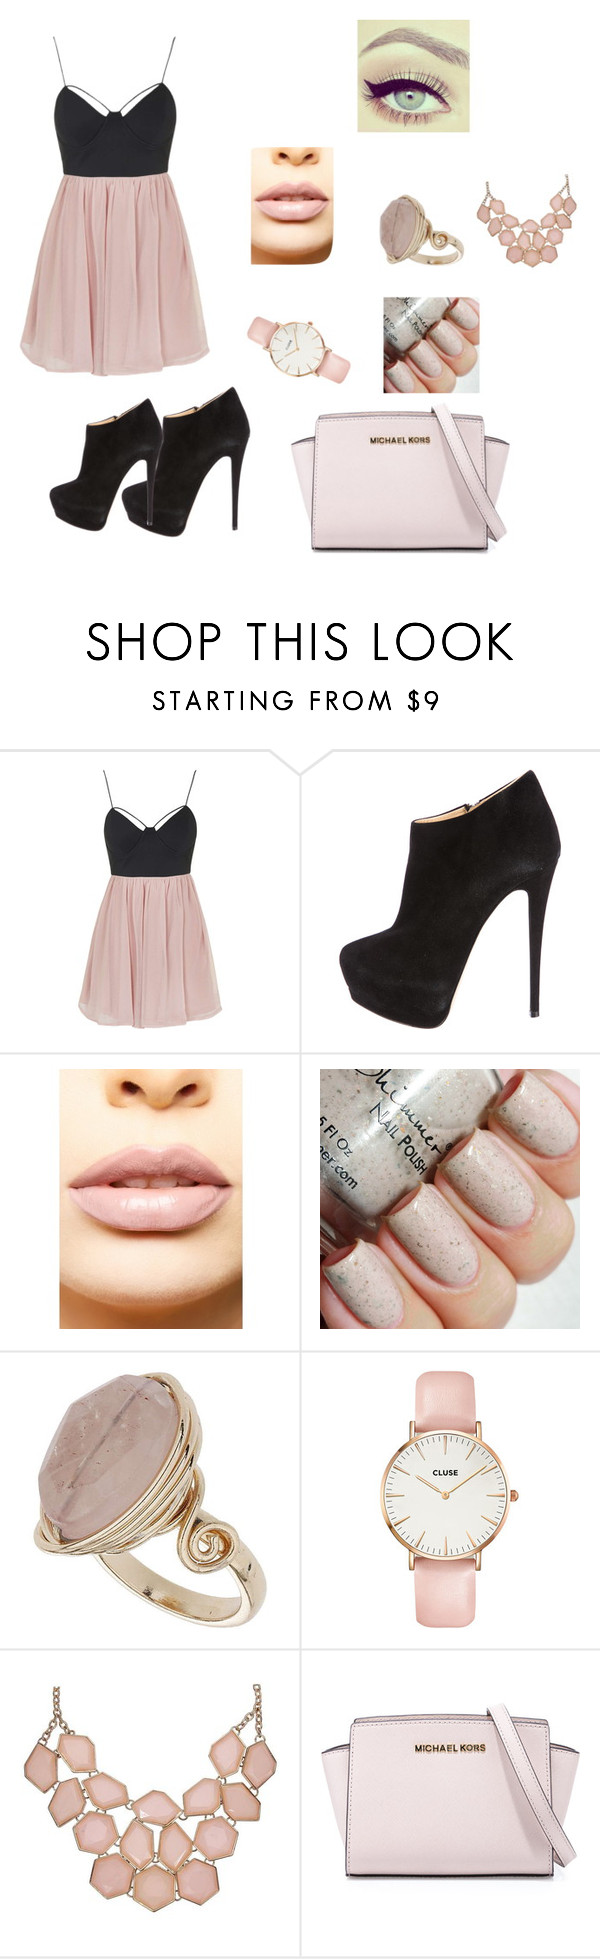 """~Banquet~"" by shannon9300 ❤ liked on Polyvore featuring Topshop, Giuseppe Zanotti, LASplash, CLUSE, MICHAEL Michael Kors, women's clothing, women, female, woman and misses"